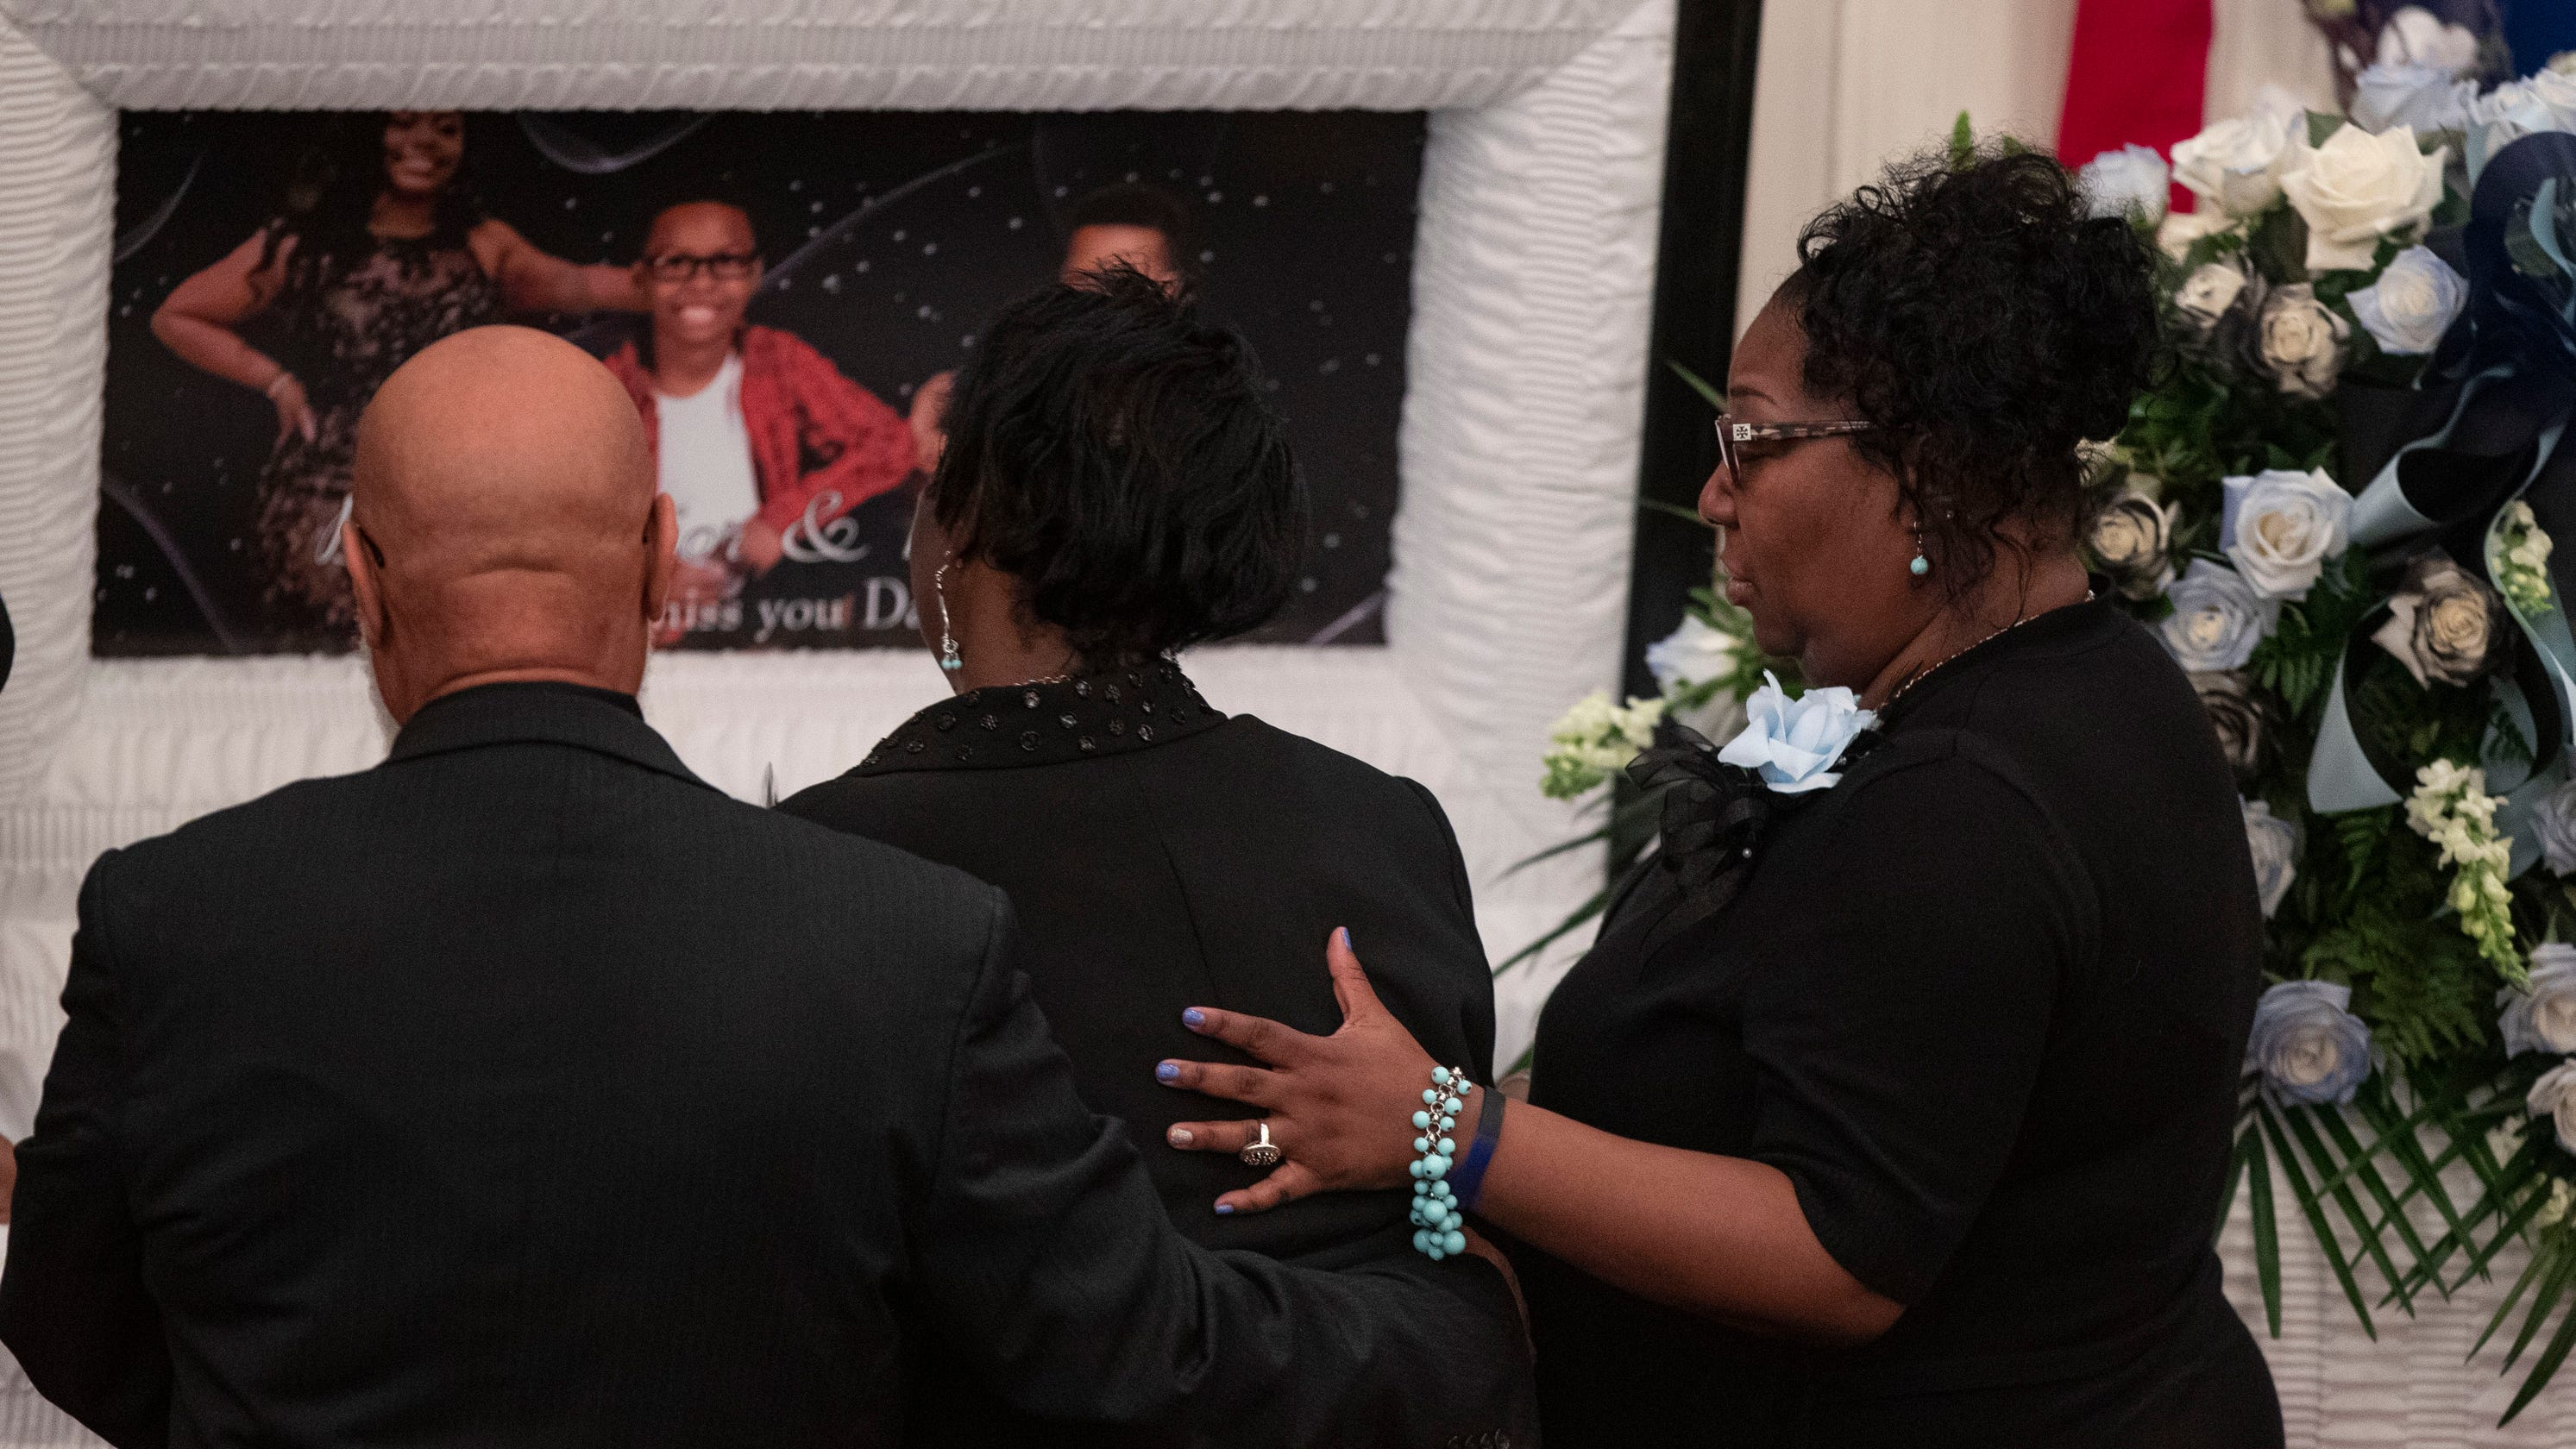 Southaven Walmart shooting: hundreds attend funeral for Brandon Gales